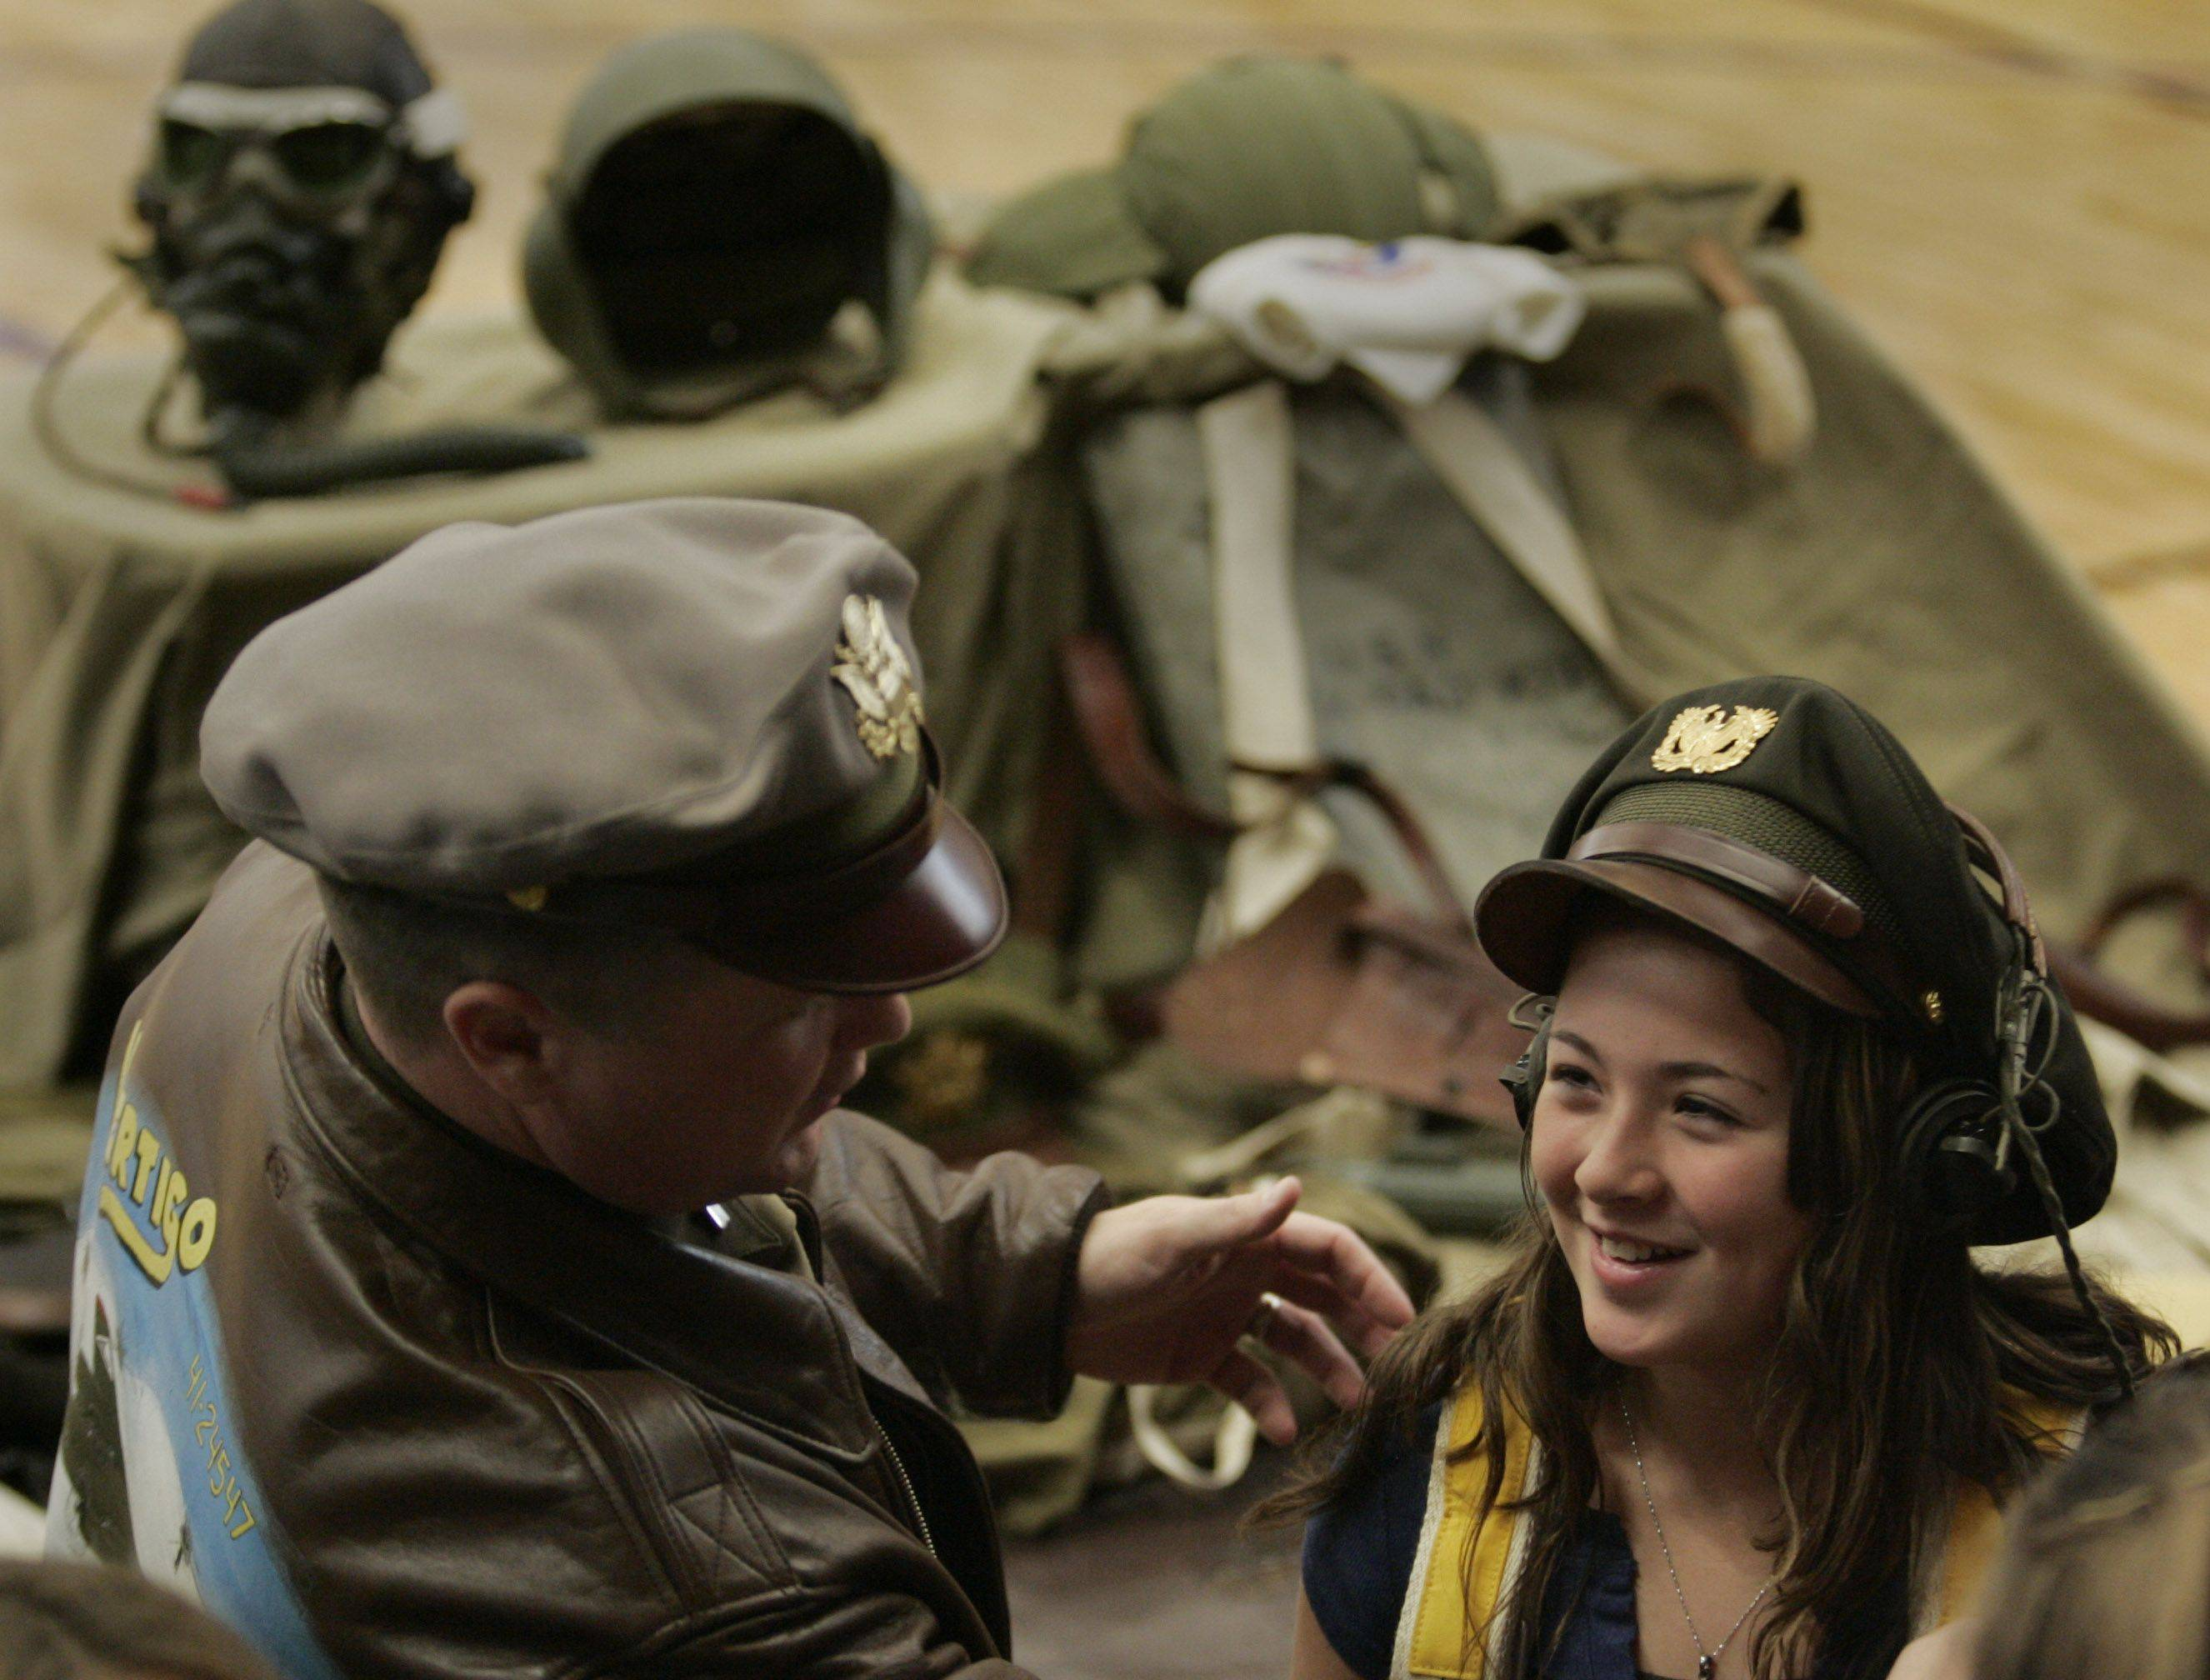 Sixth-grader McKenna Graham tries on gear worn by B-17 bomber pilots in World War II including a chest pack parachute, crusher cap and radio headphones during an interactive display on Veterans Day at Hampshire Middle School. The B-17 pilot at left, a member of the national Historical Re-enactment Society, asked not to be identified.